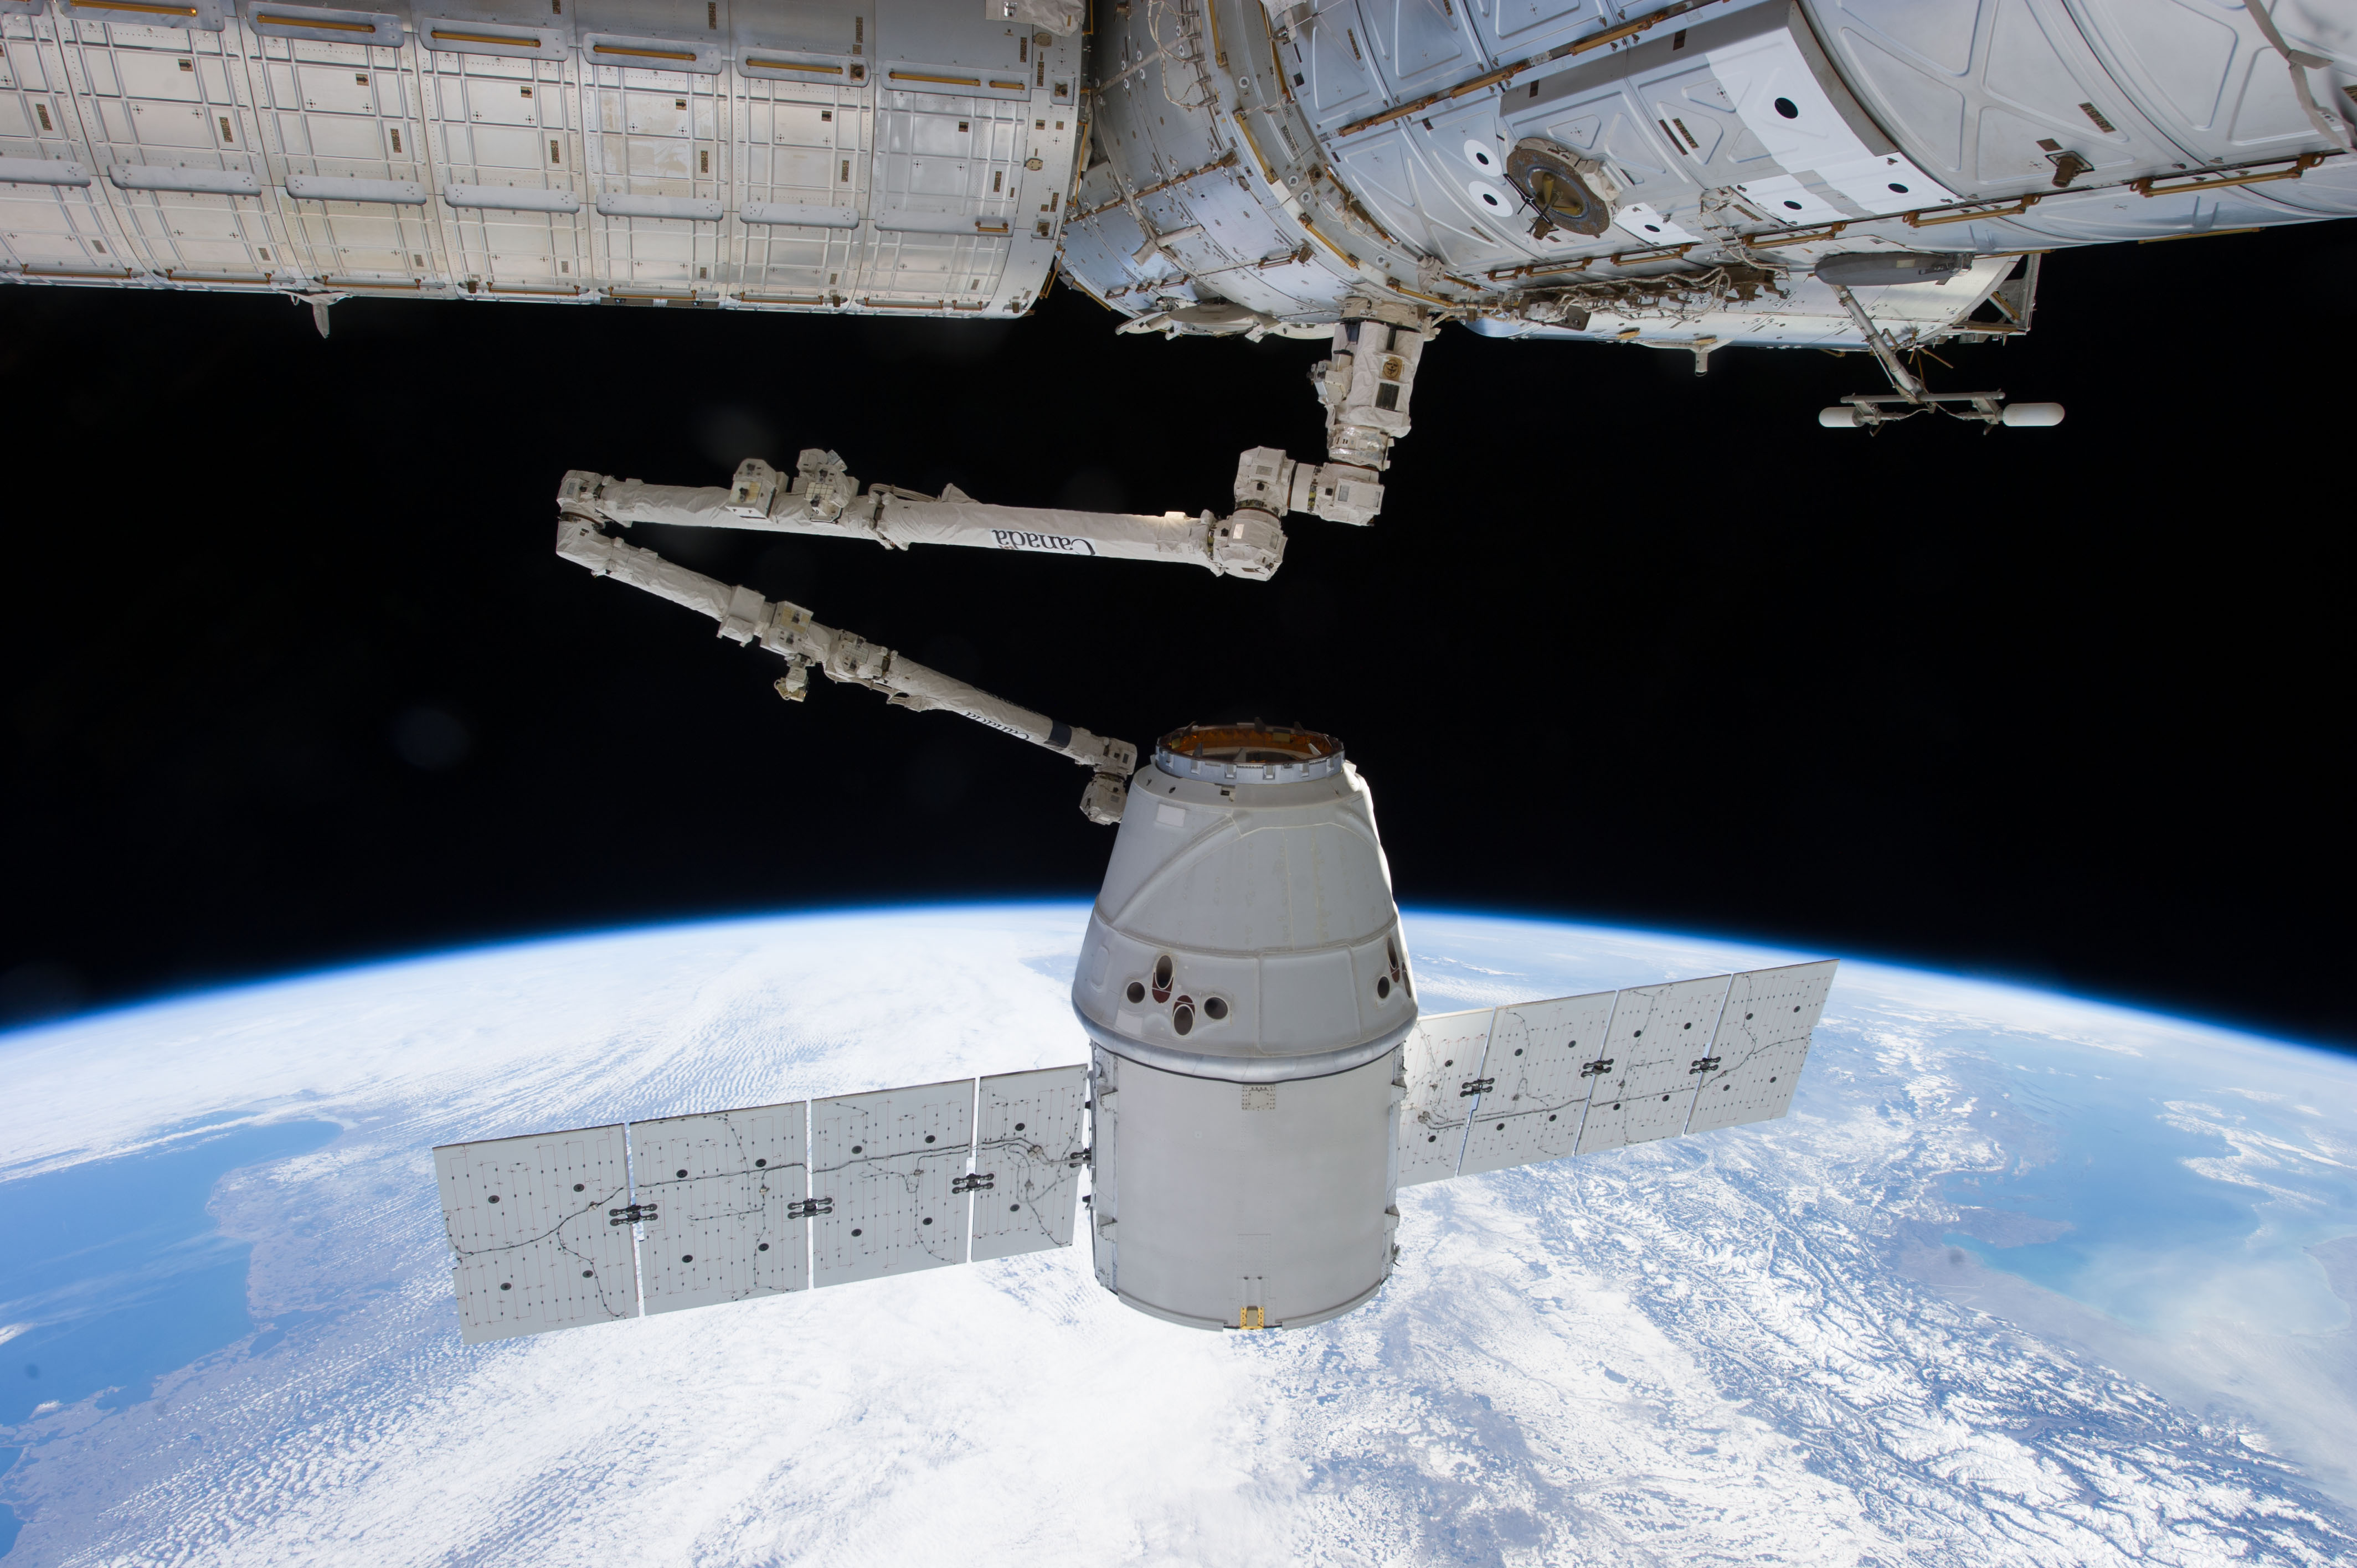 Dragon capsule docking with space station